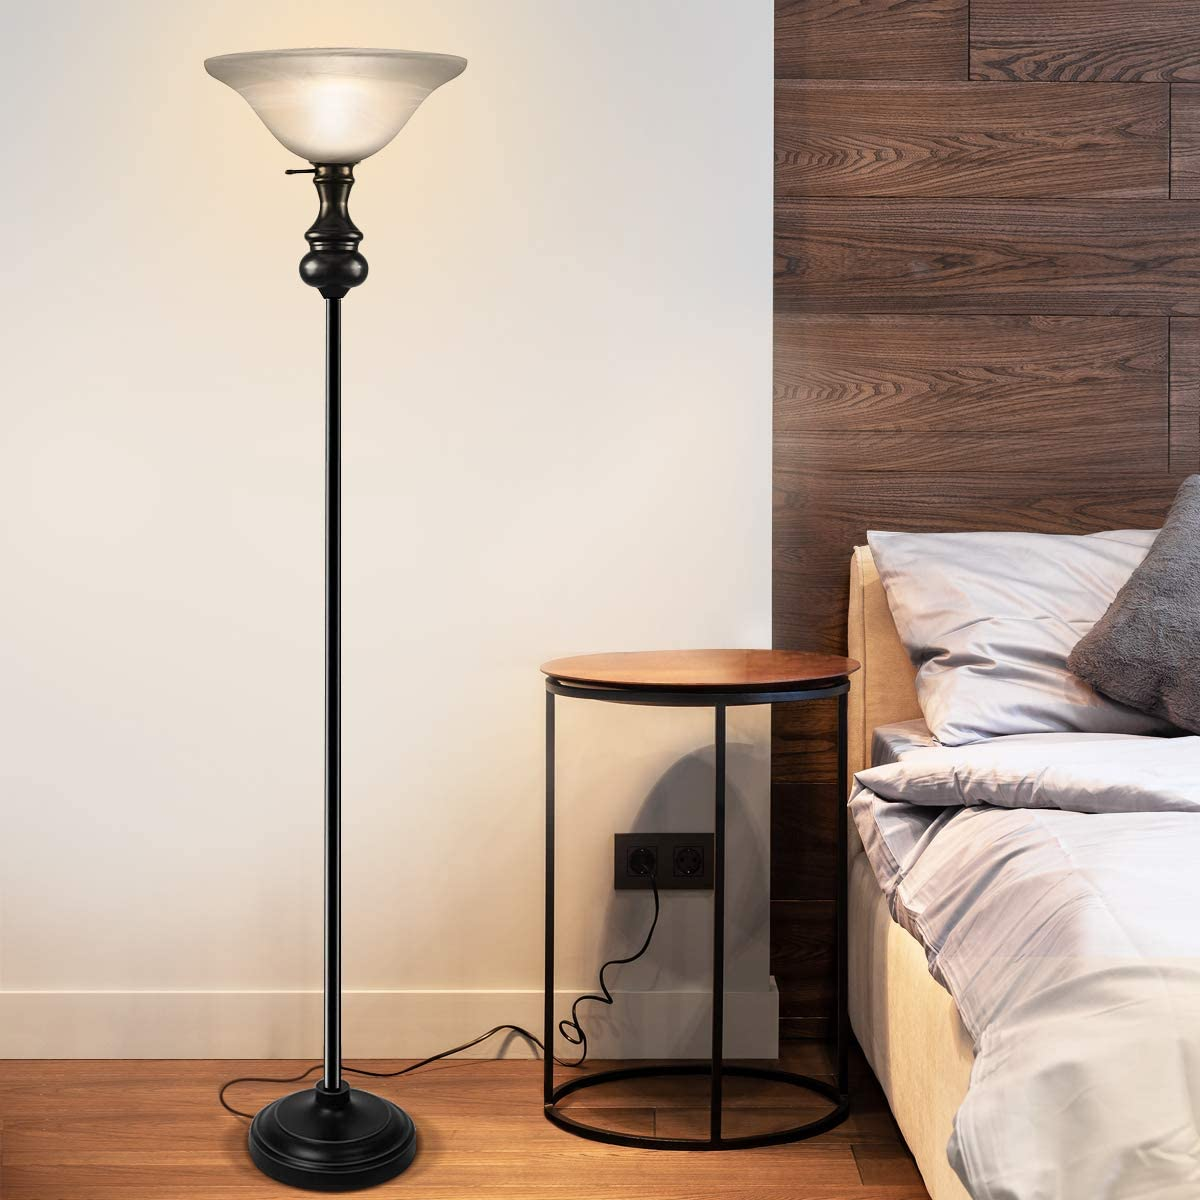 On-each-Modern-Shirley-Torchiere-Floor-Lamp 15 Unique Artistic Floor Lamps to Light Your Bedroom